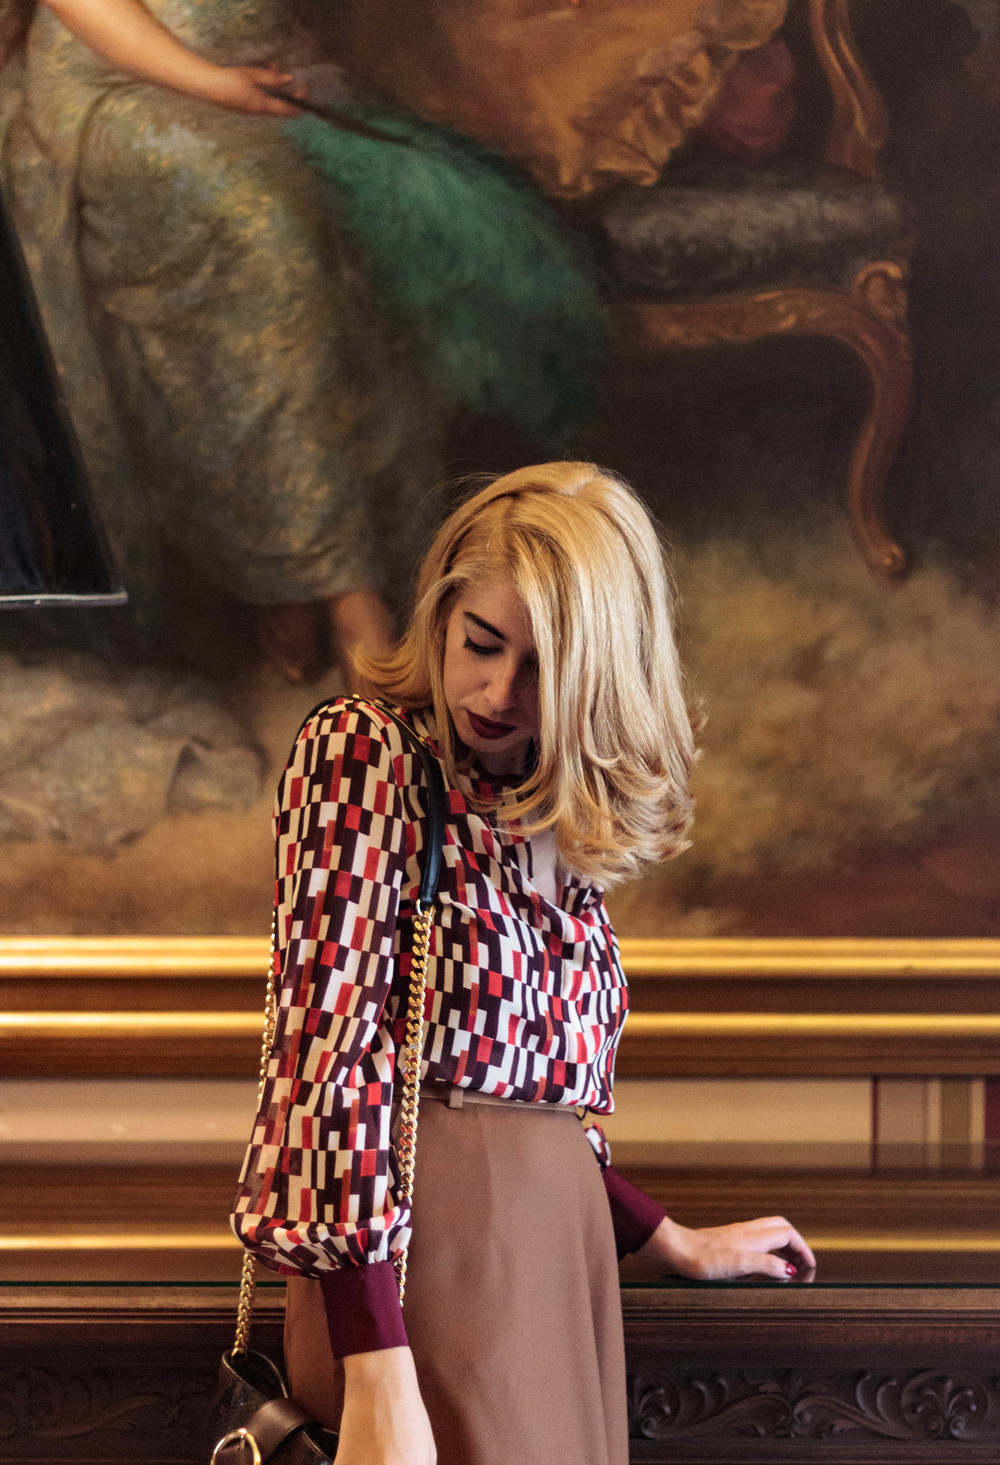 tommy hilfiger collection malta clouded revolution fall winter 2015